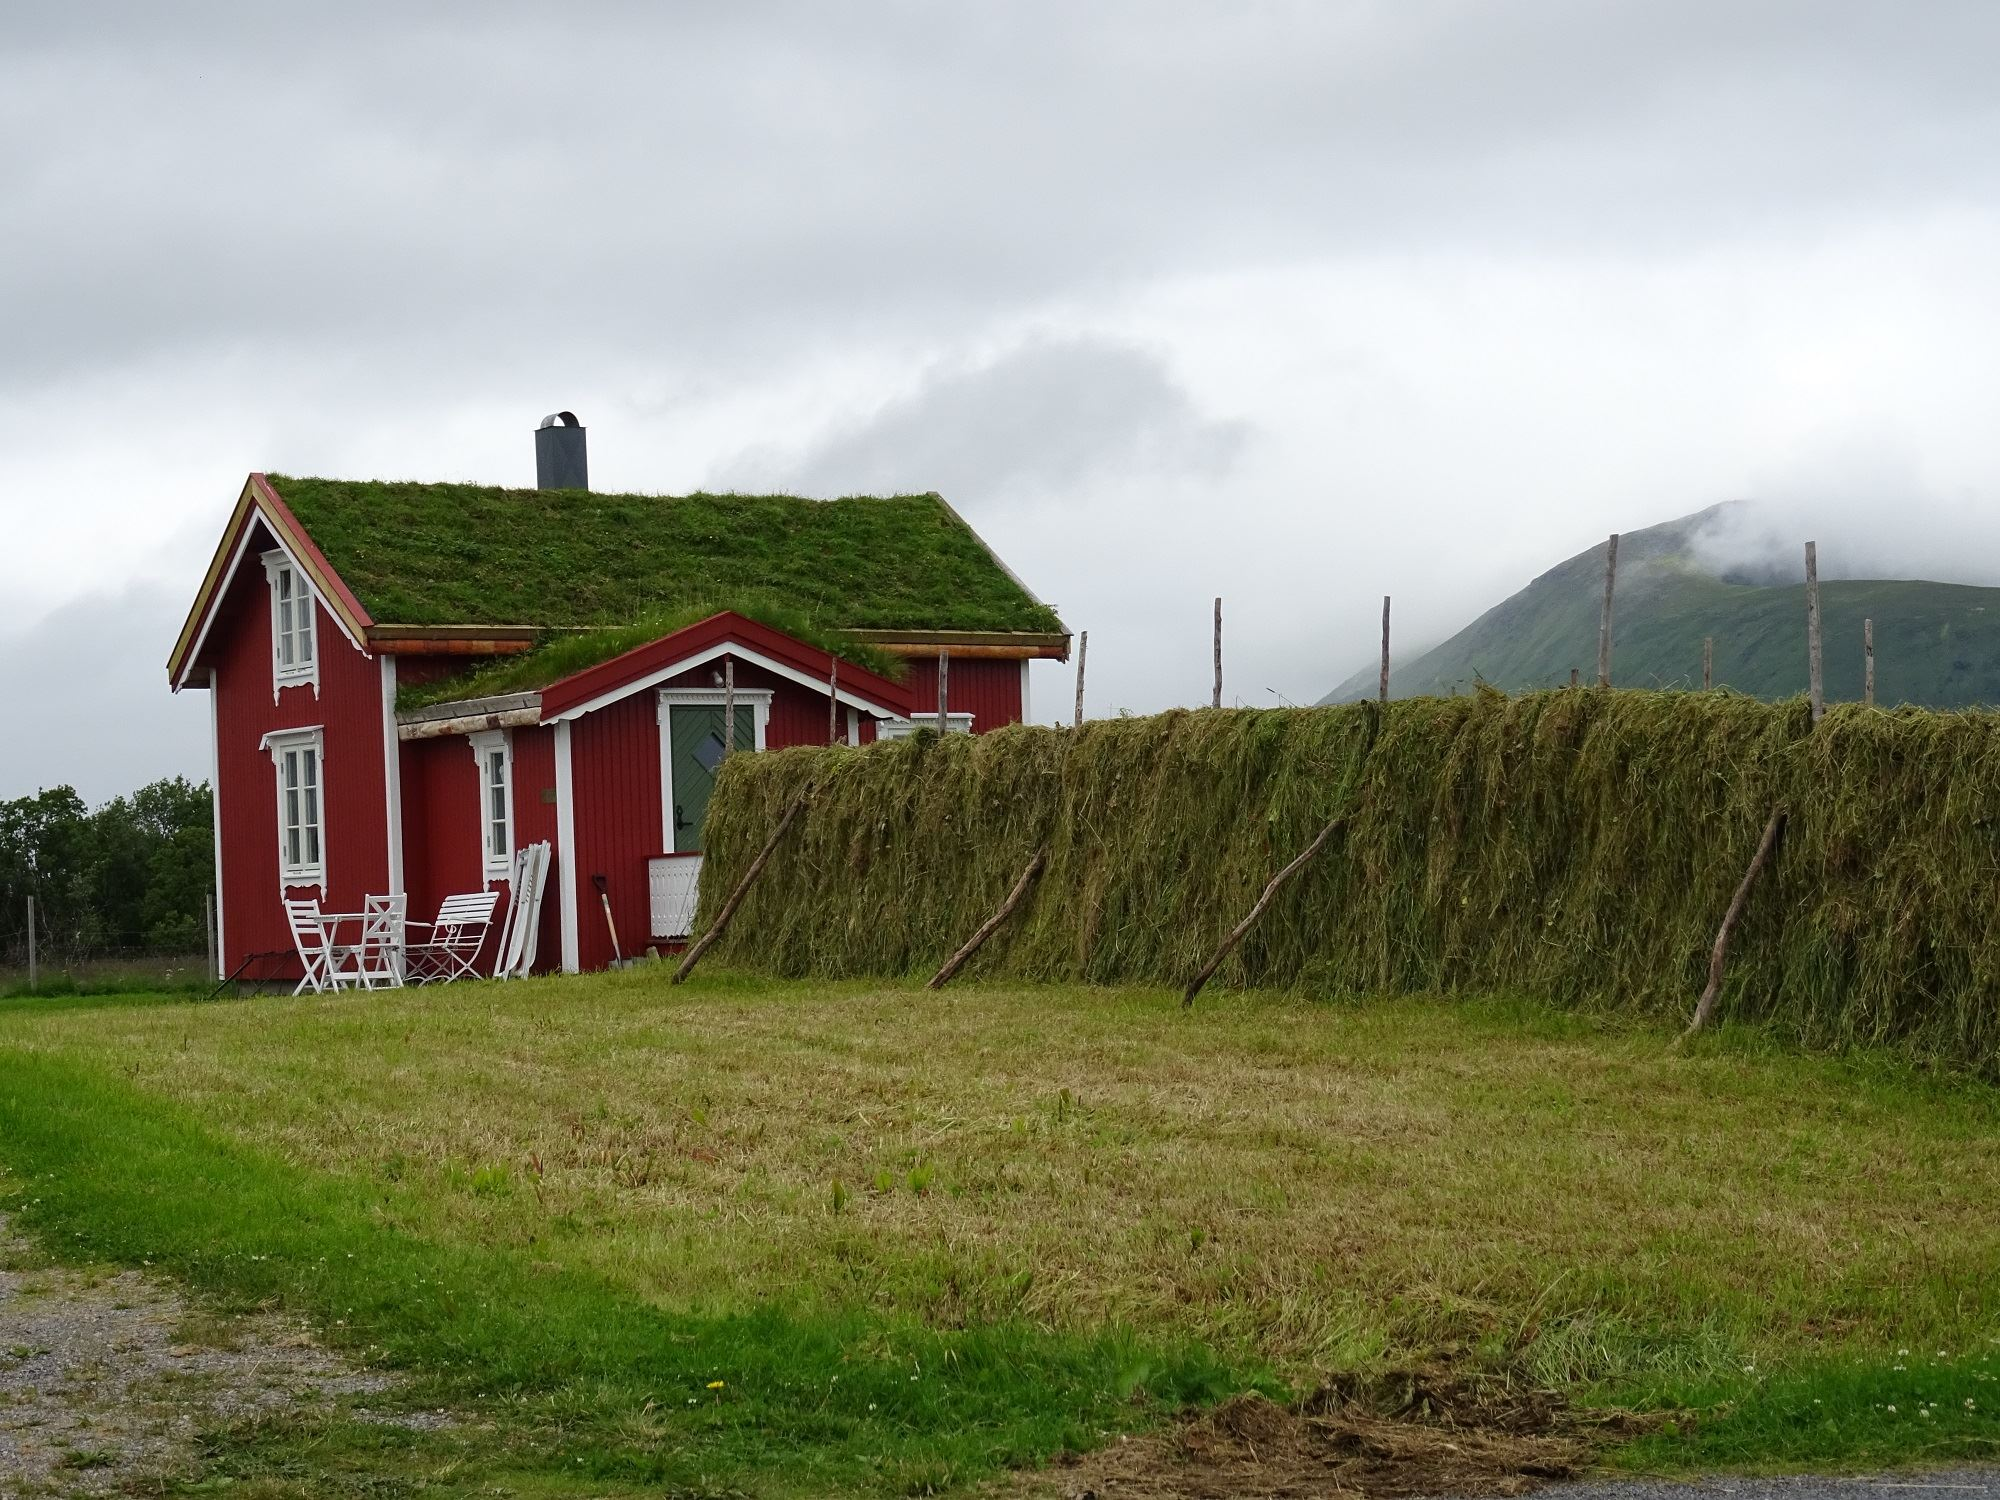 The Red house,Lovik, Andøy,Vesterålen